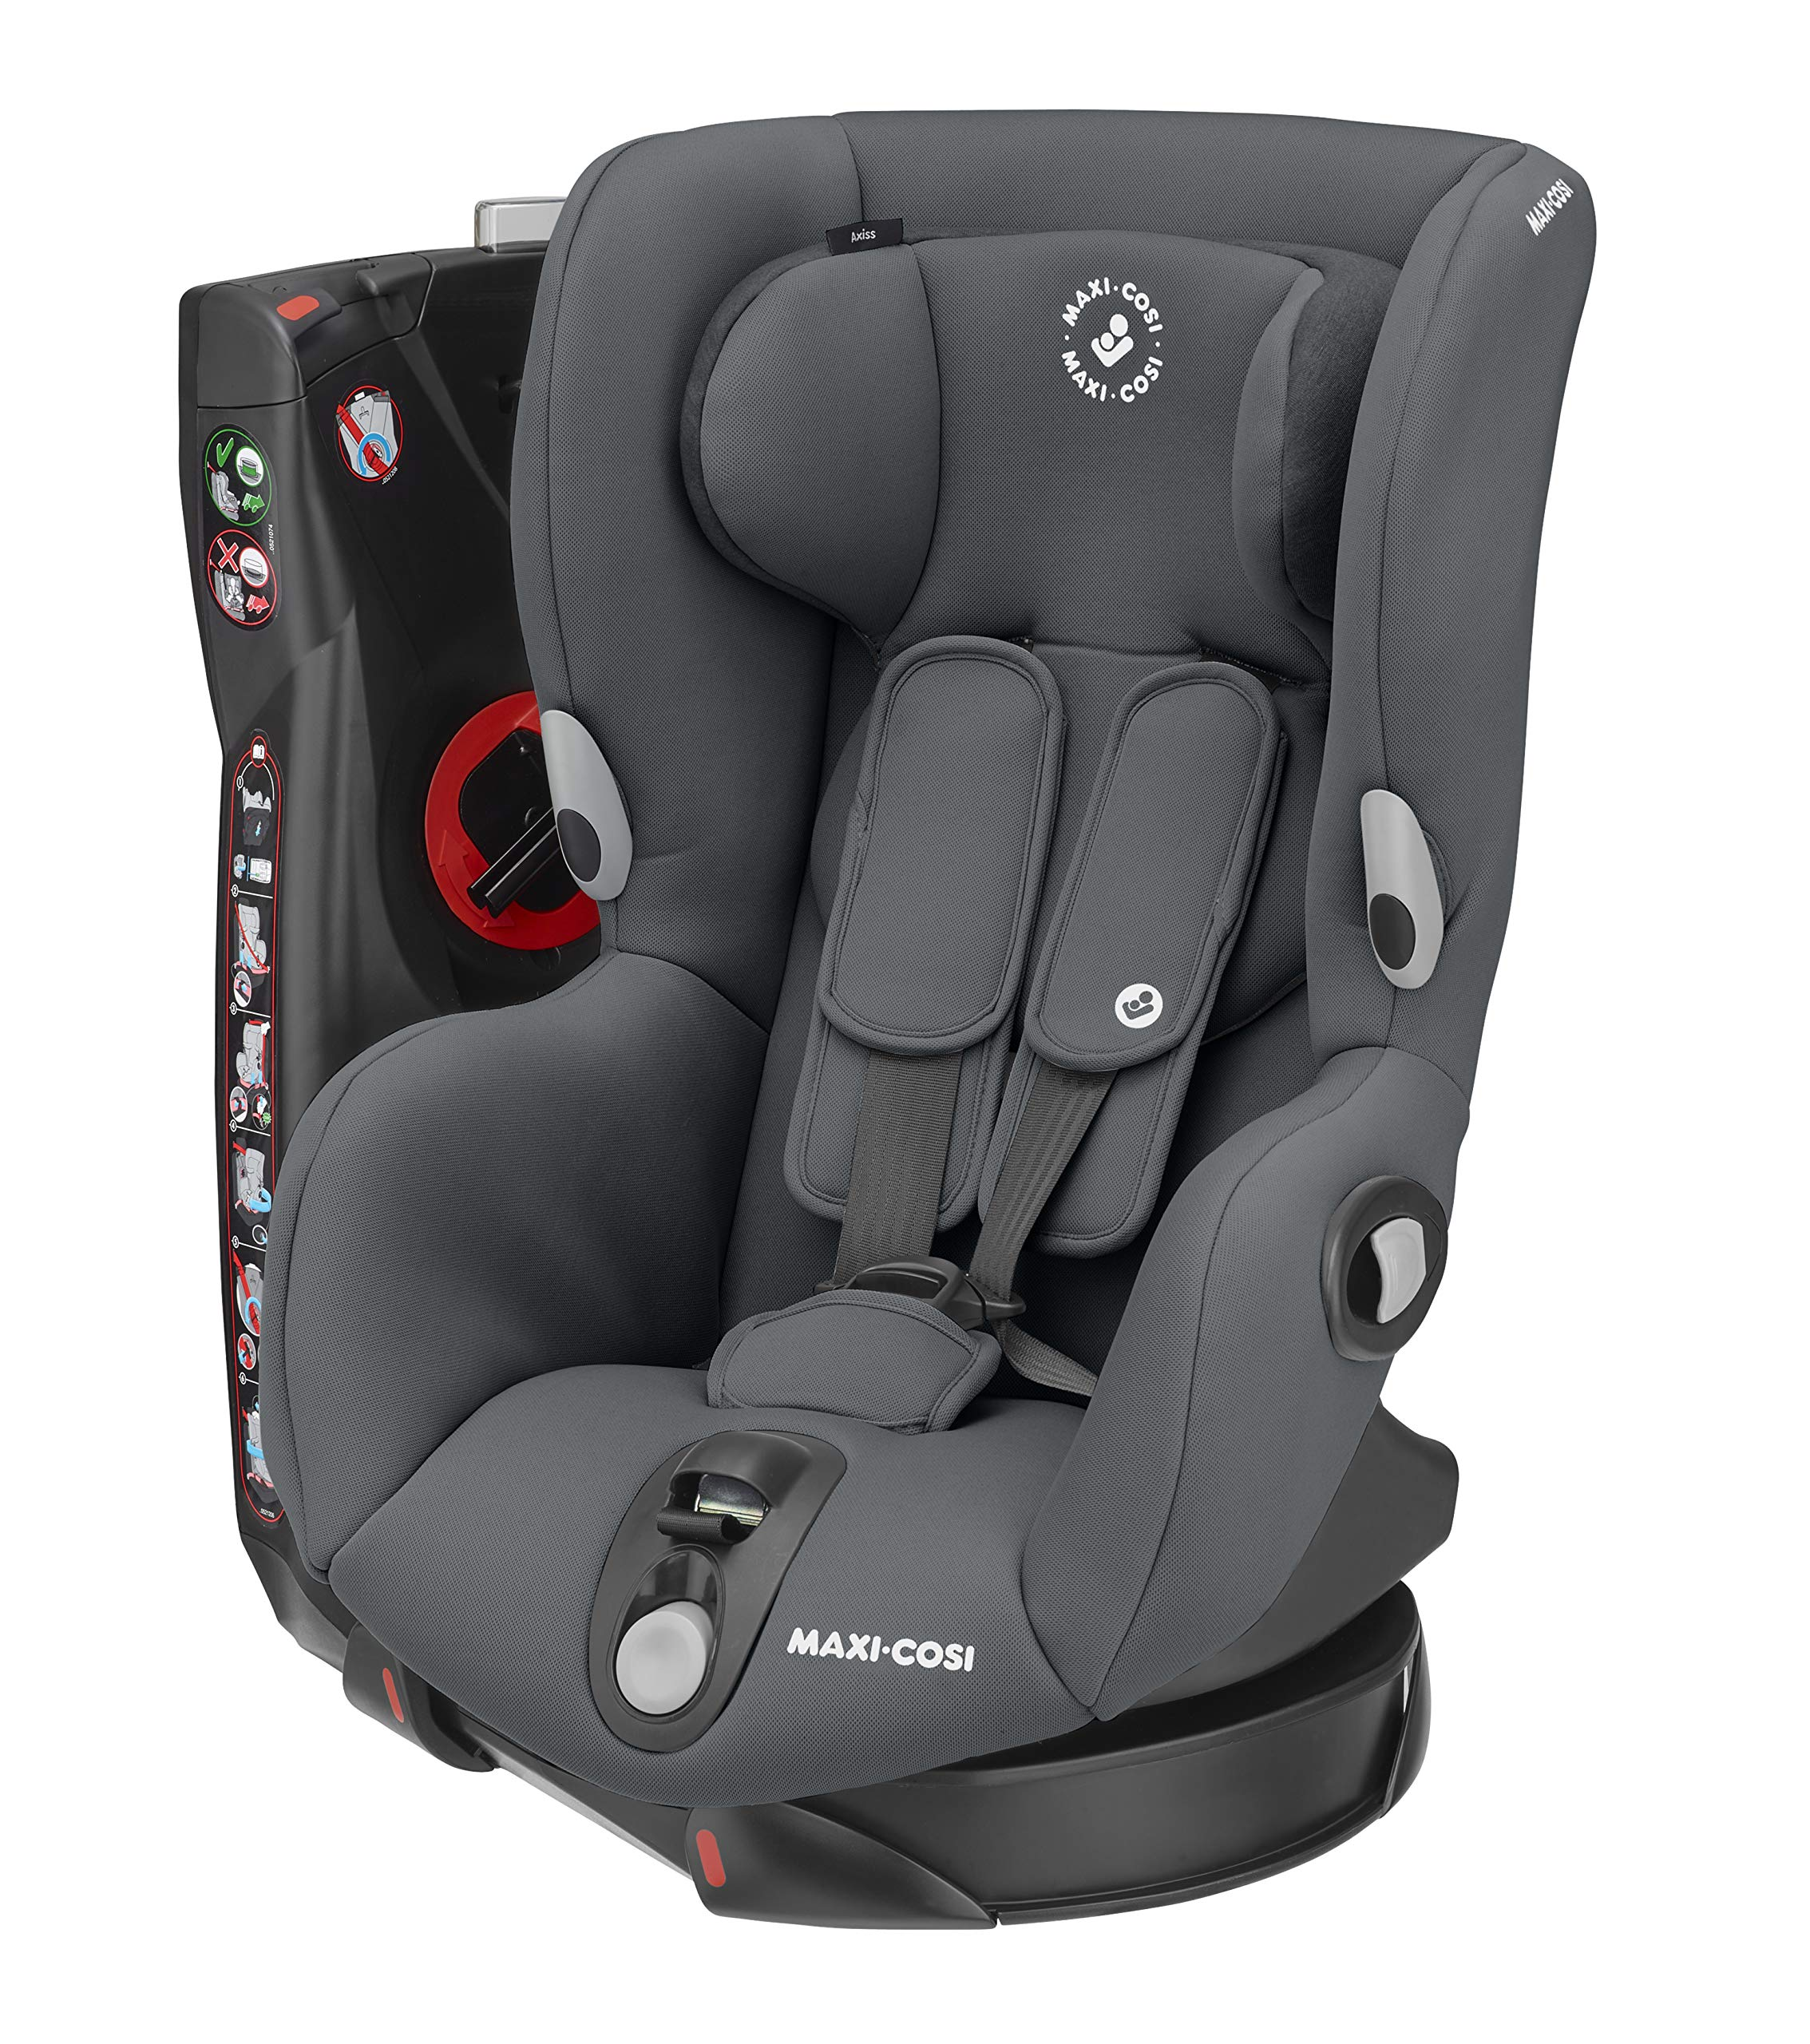 Maxi-Cosi Axiss Swivelling Toddler Car Seat, Authentic Graphite, 11.79 kg Maxi-Cosi Maxi-cosi axiss car seat swivels 90° degrees allows for front-on access to get your toddler in and out of the car more easily 8 comfortable recline positions Install using the car's seat belt and the integrated belt tensioner ensures a solid fit 1